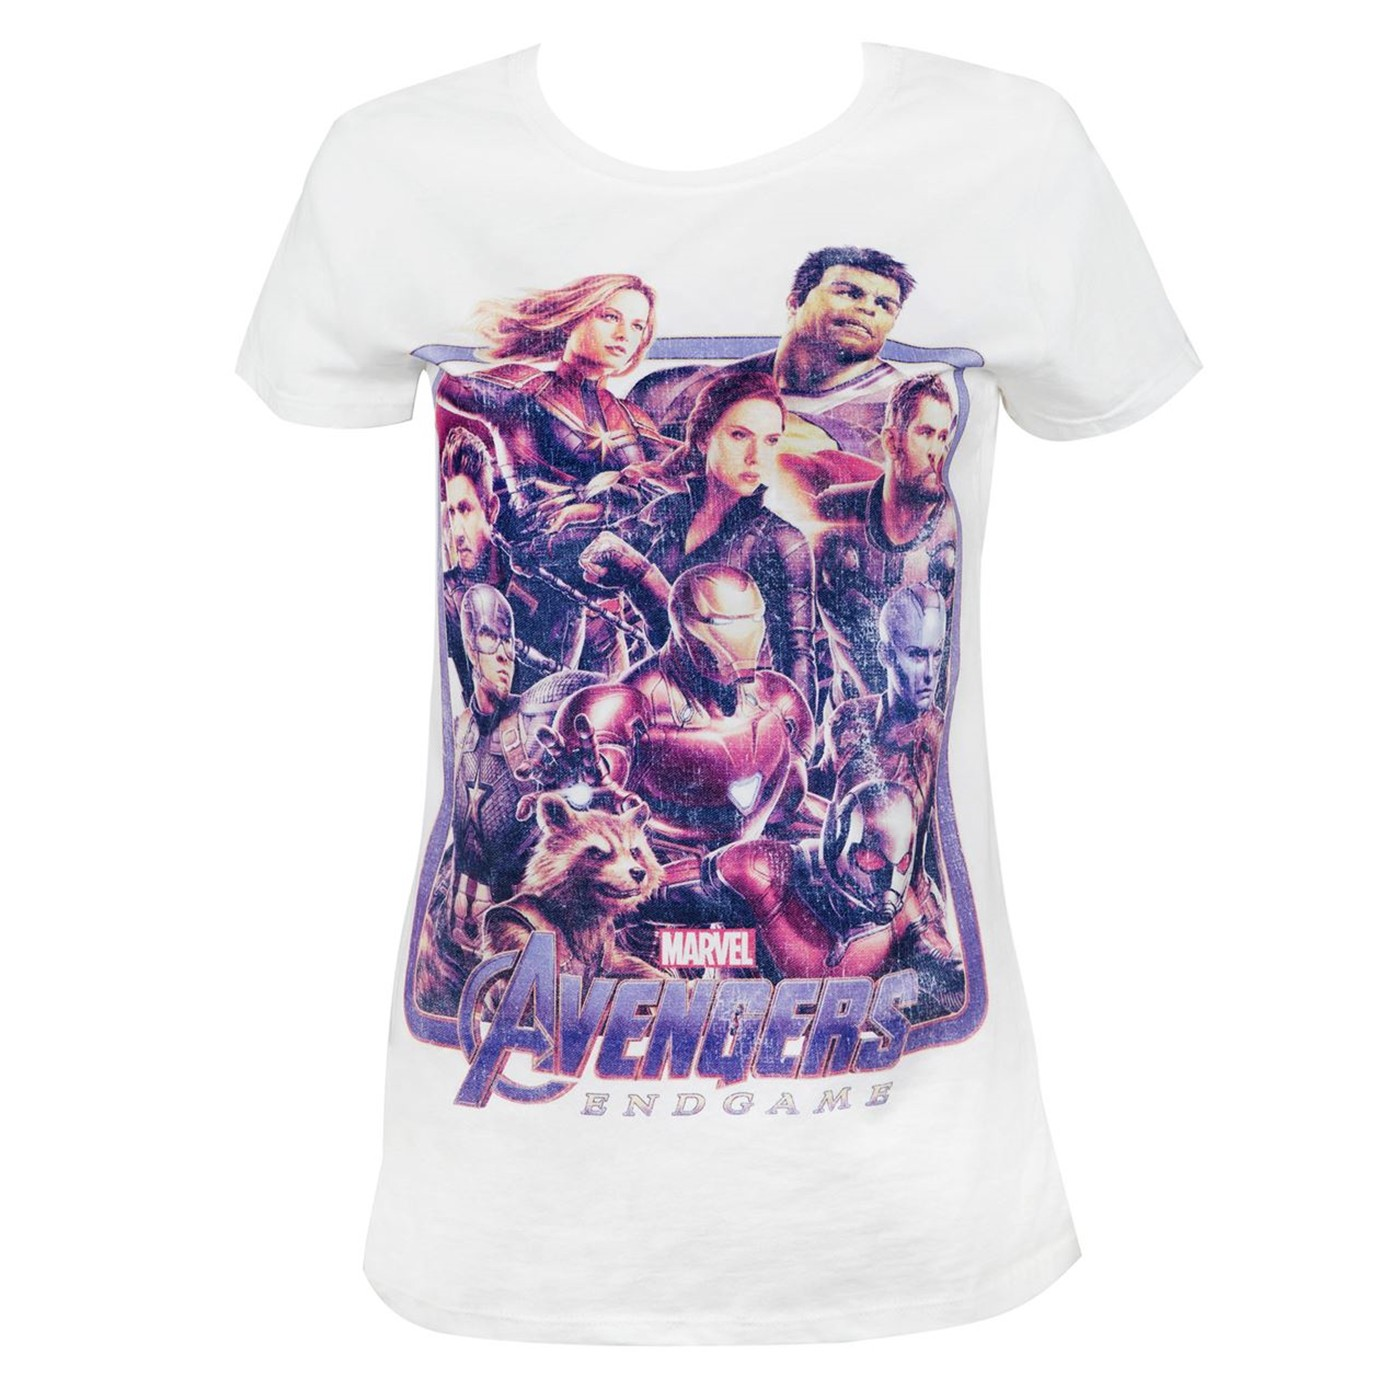 Avenger Endgame Group Shot Women's T-Shirt